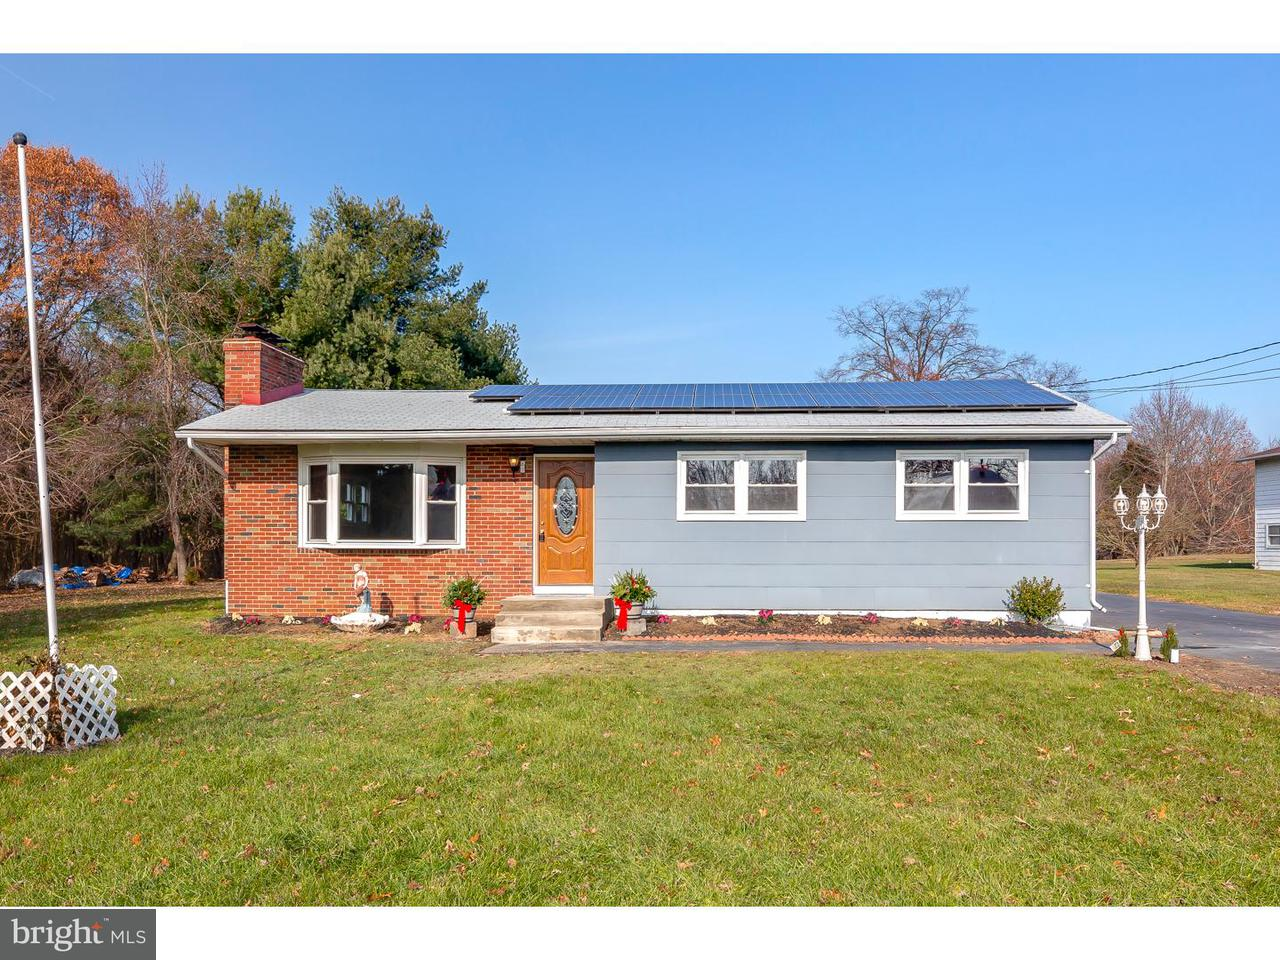 Single Family Home for Sale at 109 SPRINGFIELD MEETING HOUSE Jobstown, New Jersey 08041 United States